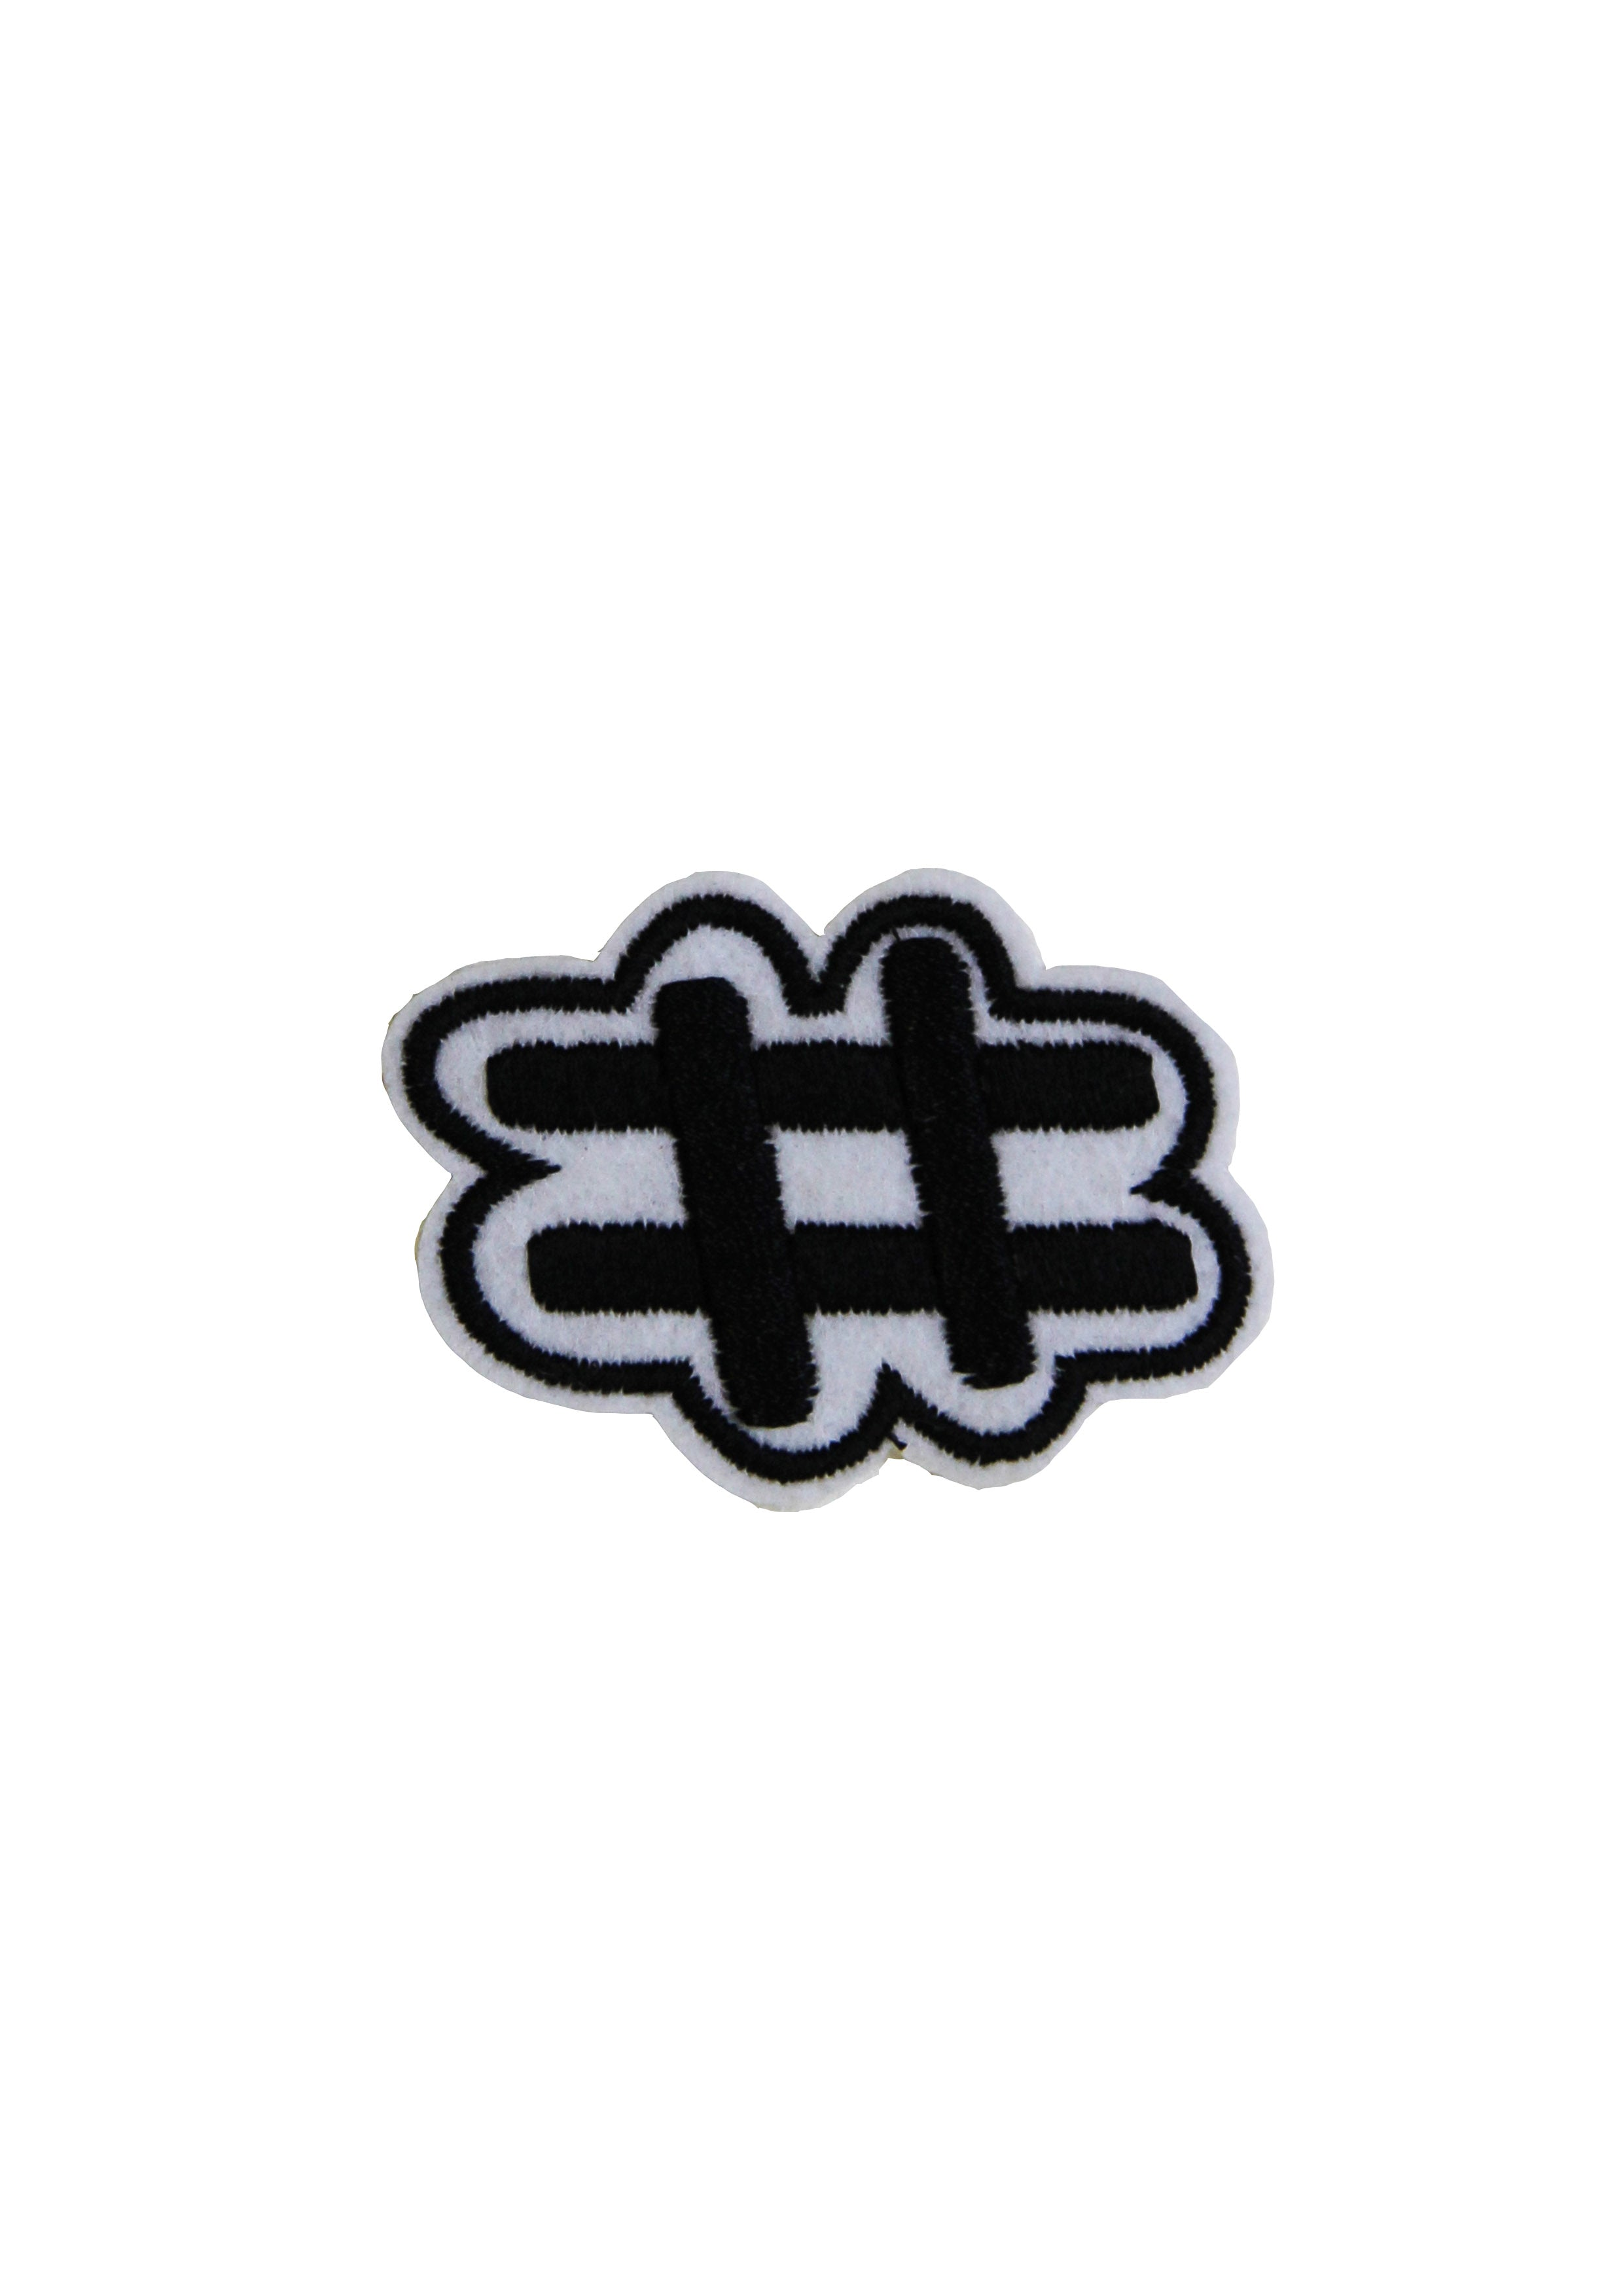 Hashtag patch